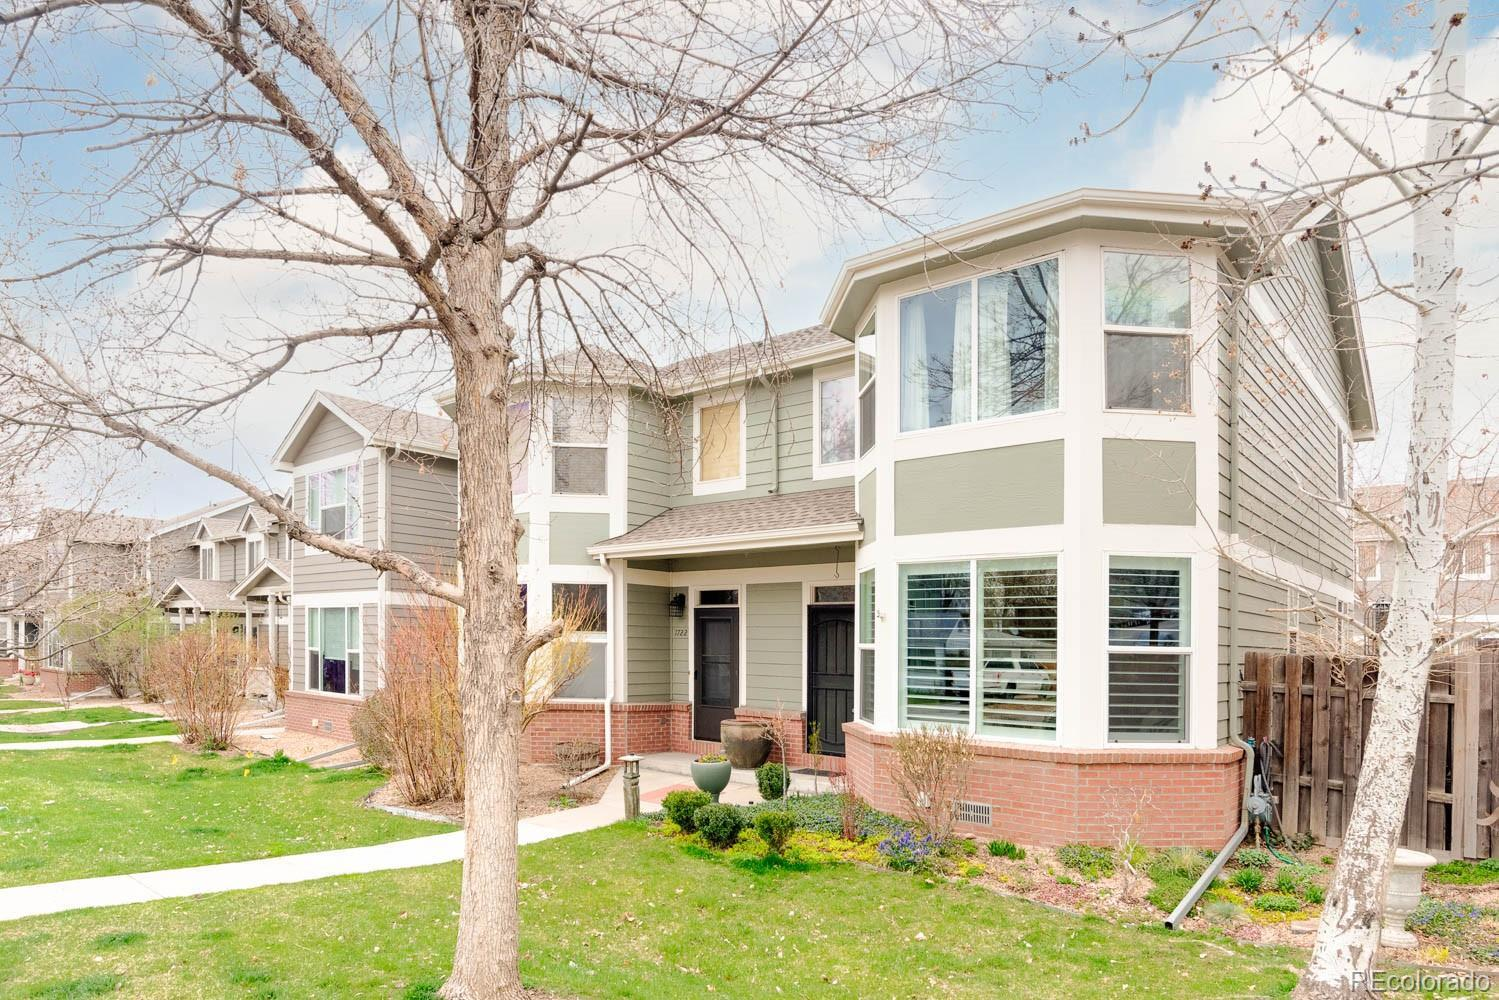 1720 Depew Street, Lakewood, CO 80214 - #: 7387008